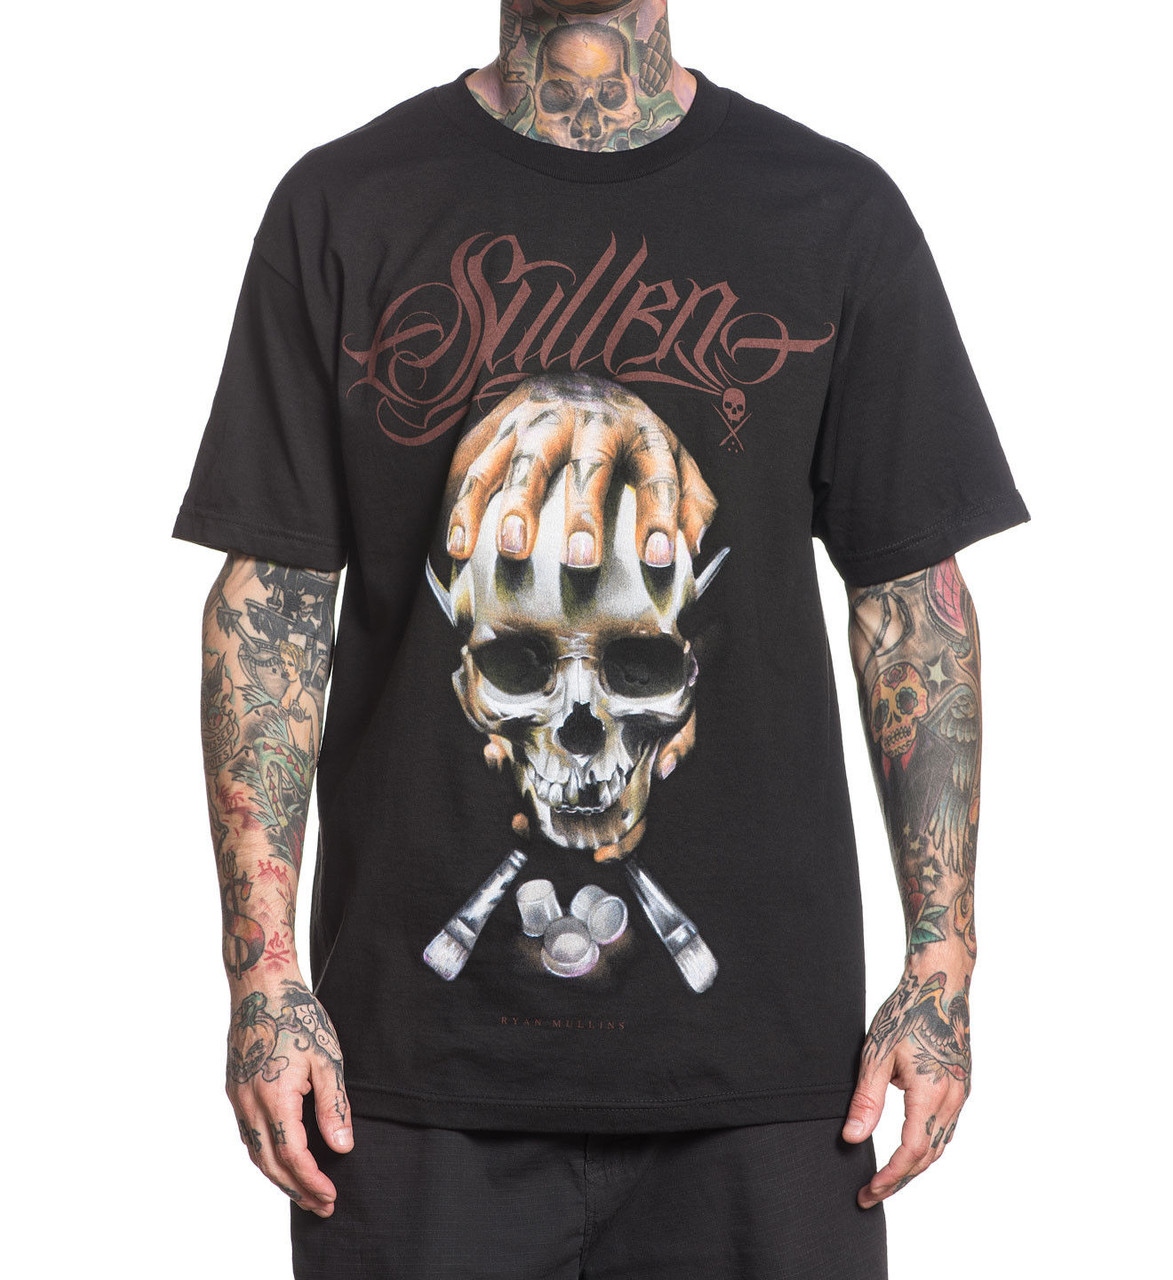 Sullen Clothing Mullins Badge Skull Tattoo Punk Adult T Tee Shirt ...